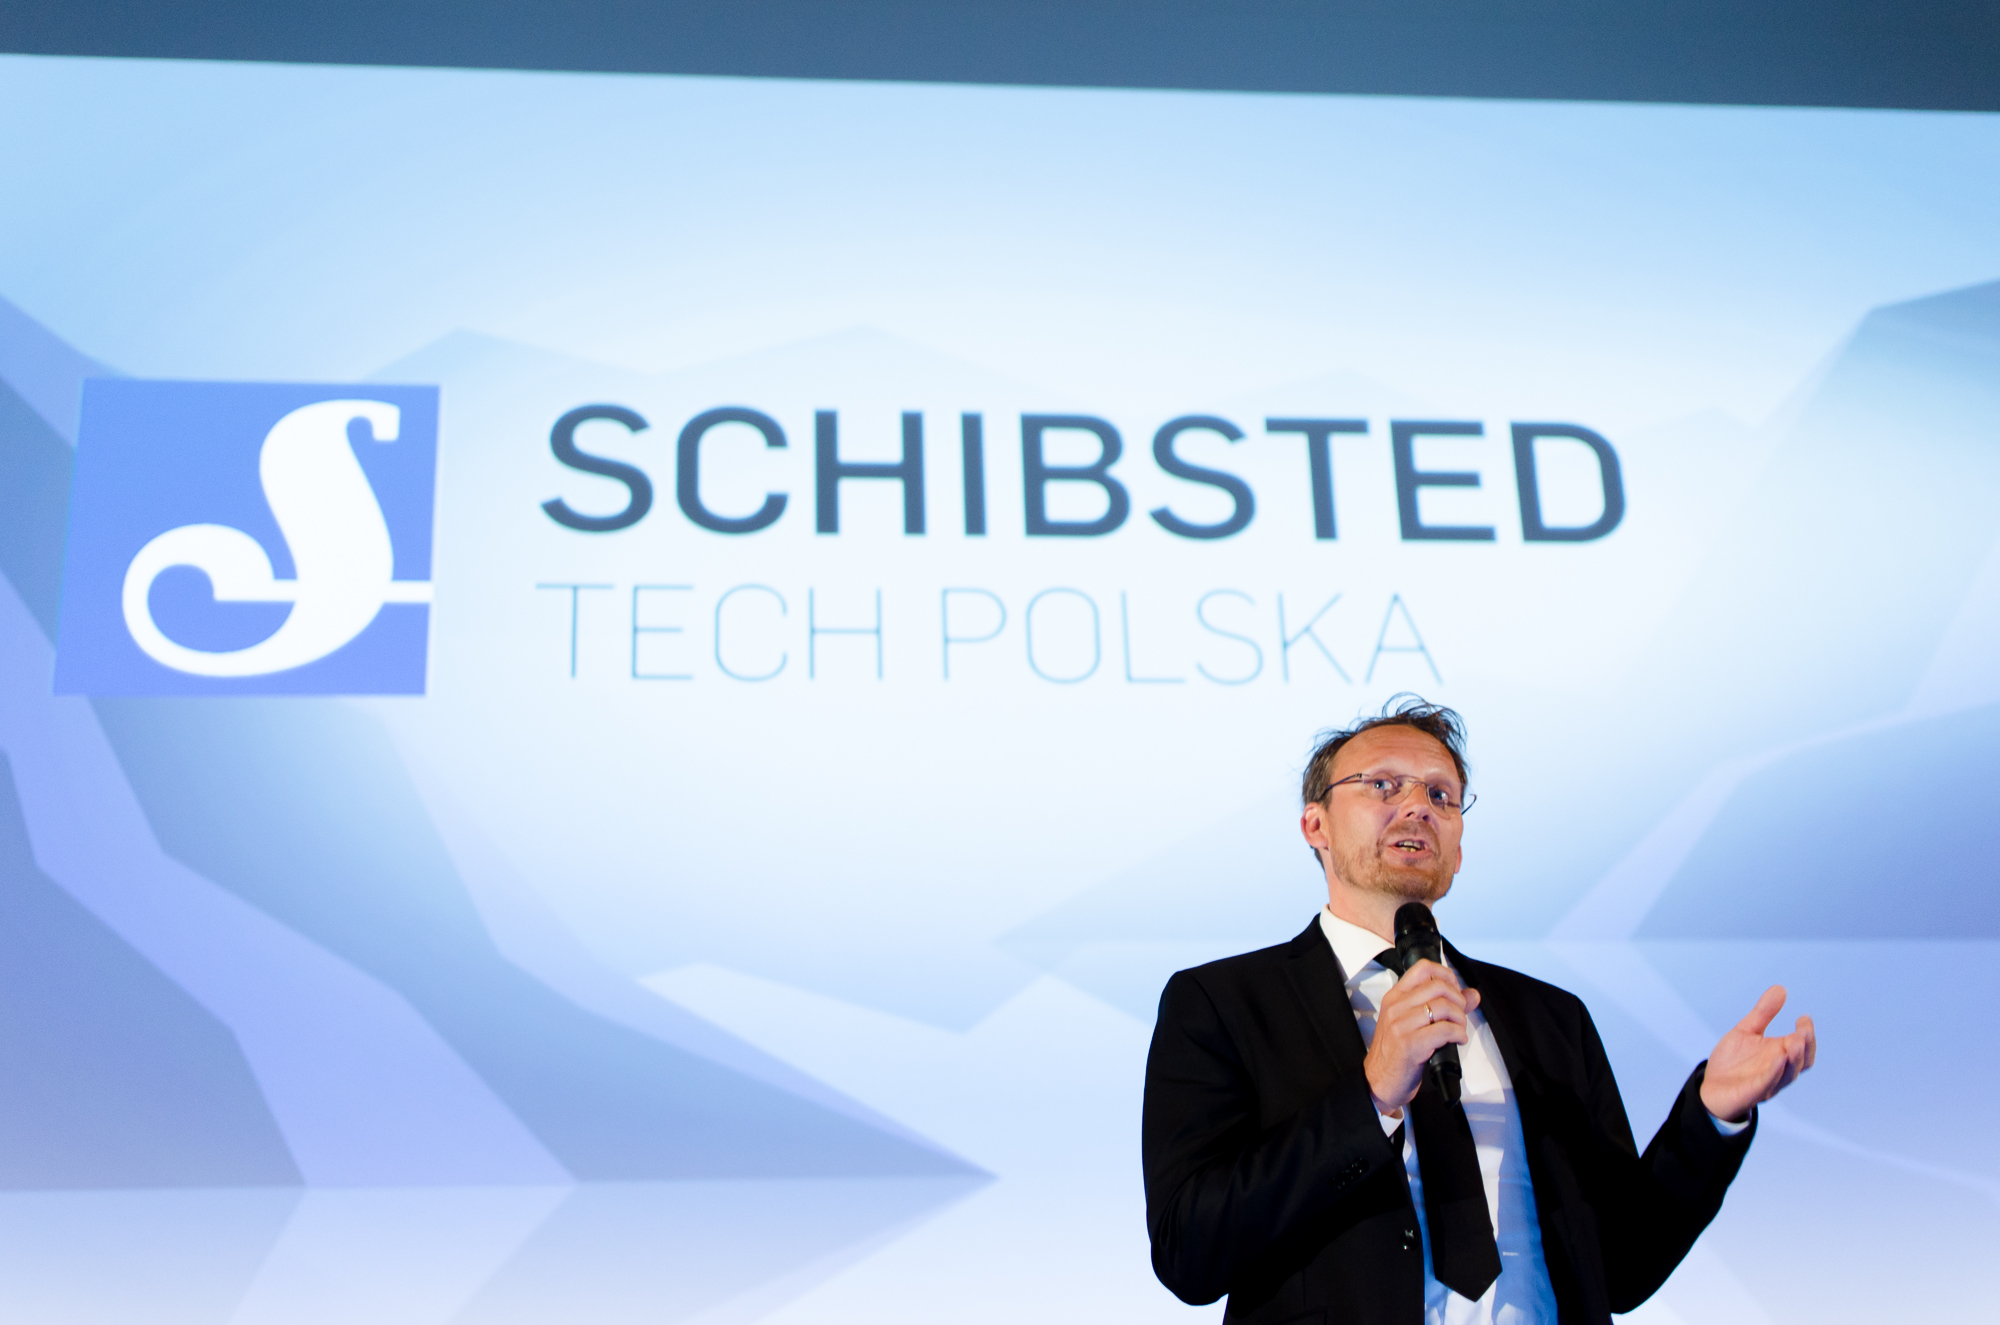 CEO Stig A. Waagbø had 40 seconds to pitch Schibsted Tech Polska as a great company to work for